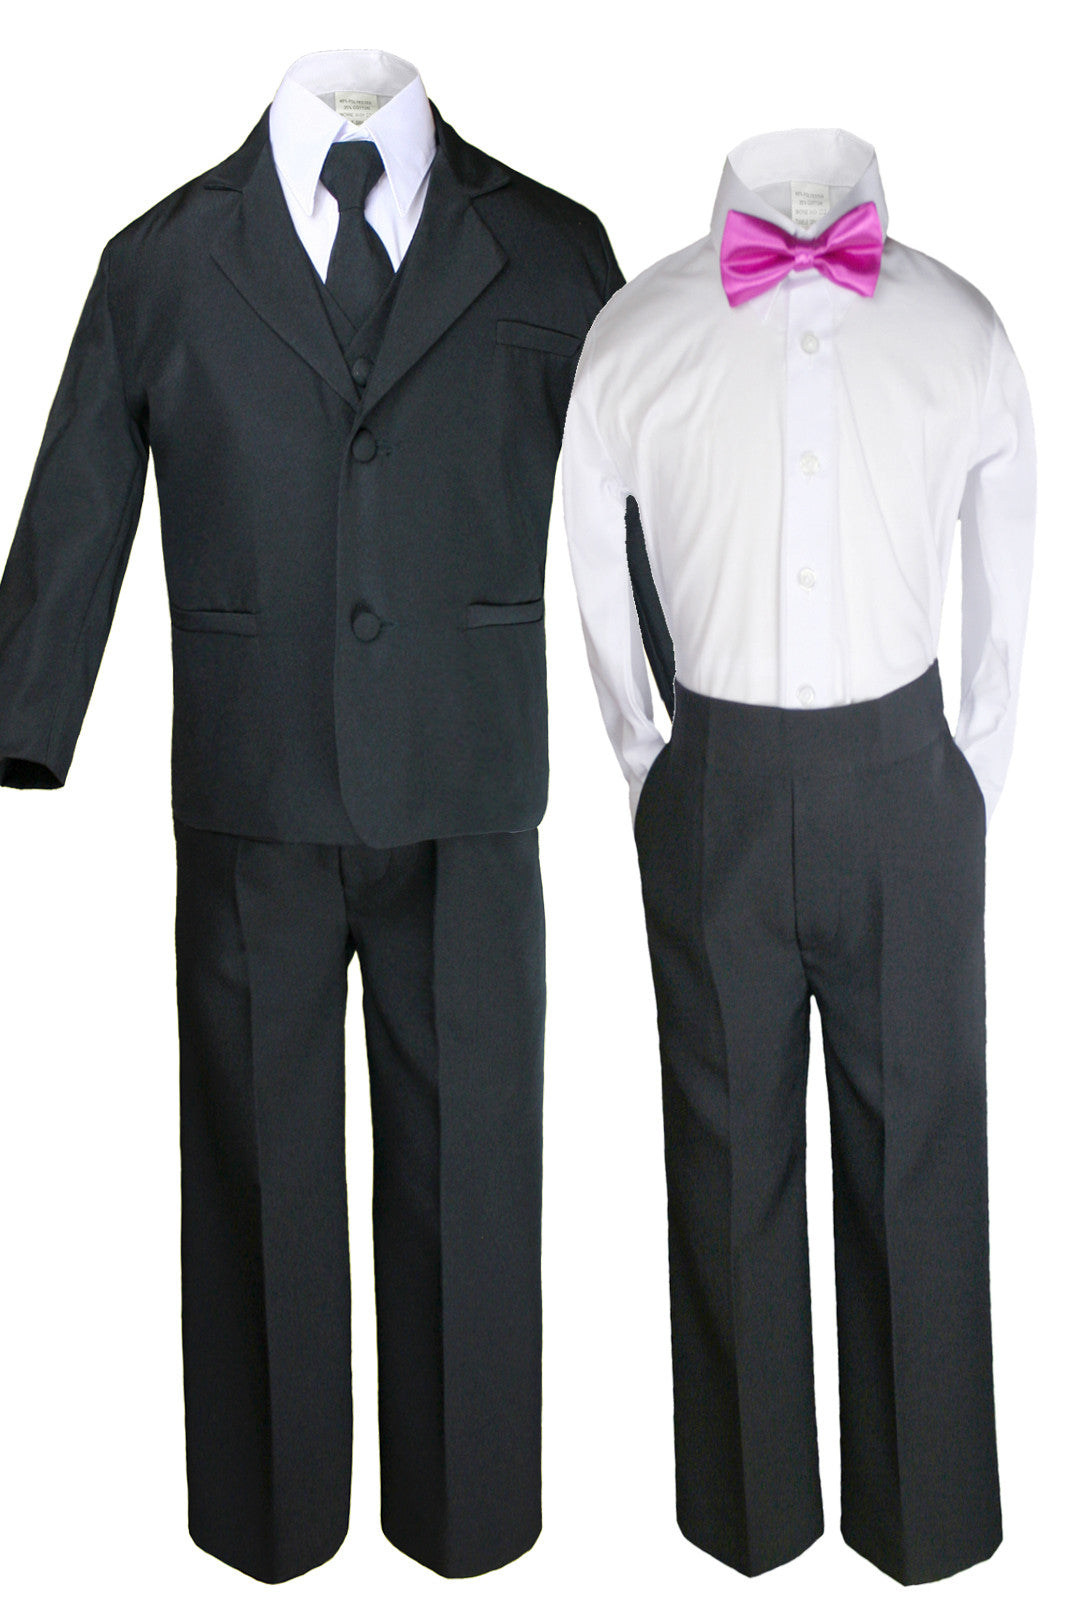 422bfa0bcb Unotux 6 Pcs Boys Black Formal Suits with Satin Fuchsia Pink Bow Tie Sets  for All